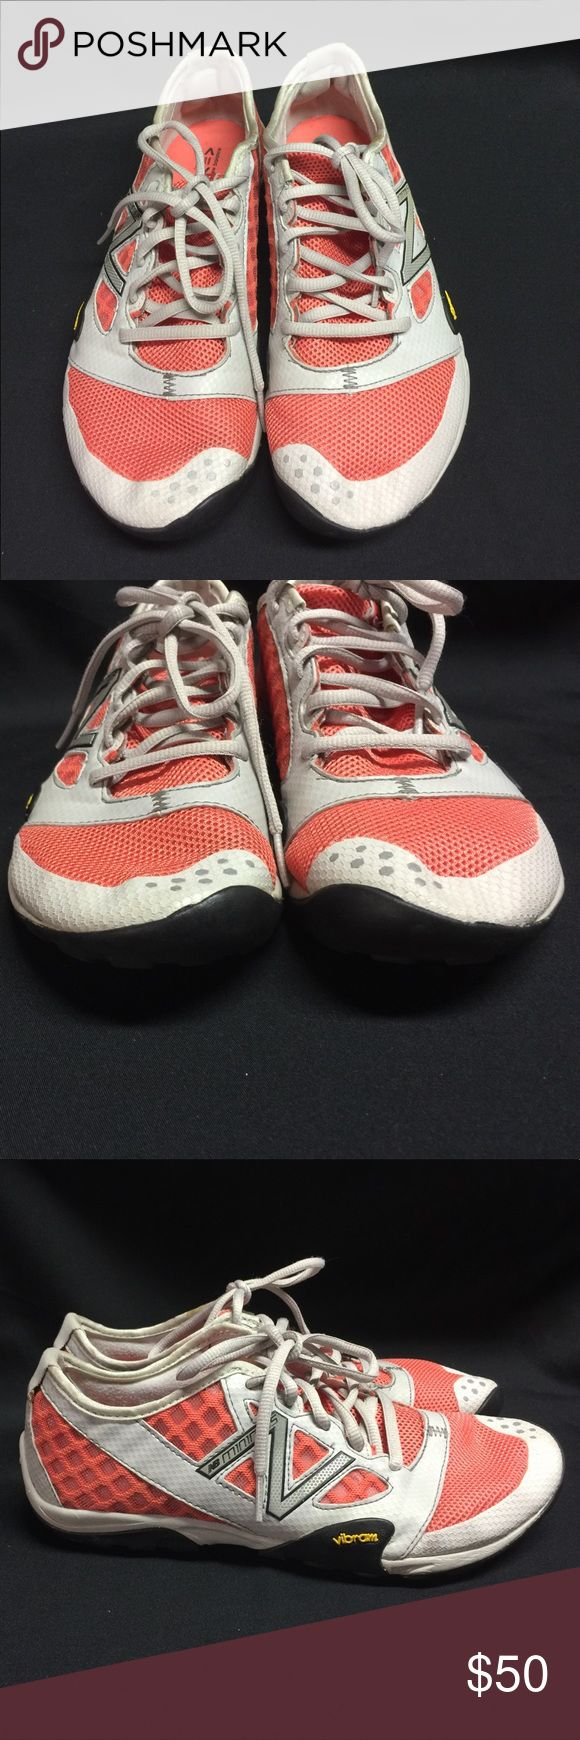 New Balance Minimus Running Shoe Orange Tan New Balance Womens Minimus WT20CG Running Shoe Training Lightweight Orange and tan These shoes look like they were worn very little.  Only minor scuffs.  See pics to see if they will work for you!  This edition of the Minimus Trail features a modified upper on the same comfortable sole unit as its popular counterpart the WT10, creating a near-barefoot experience on the trail.. New Balance Shoes Athletic Shoes